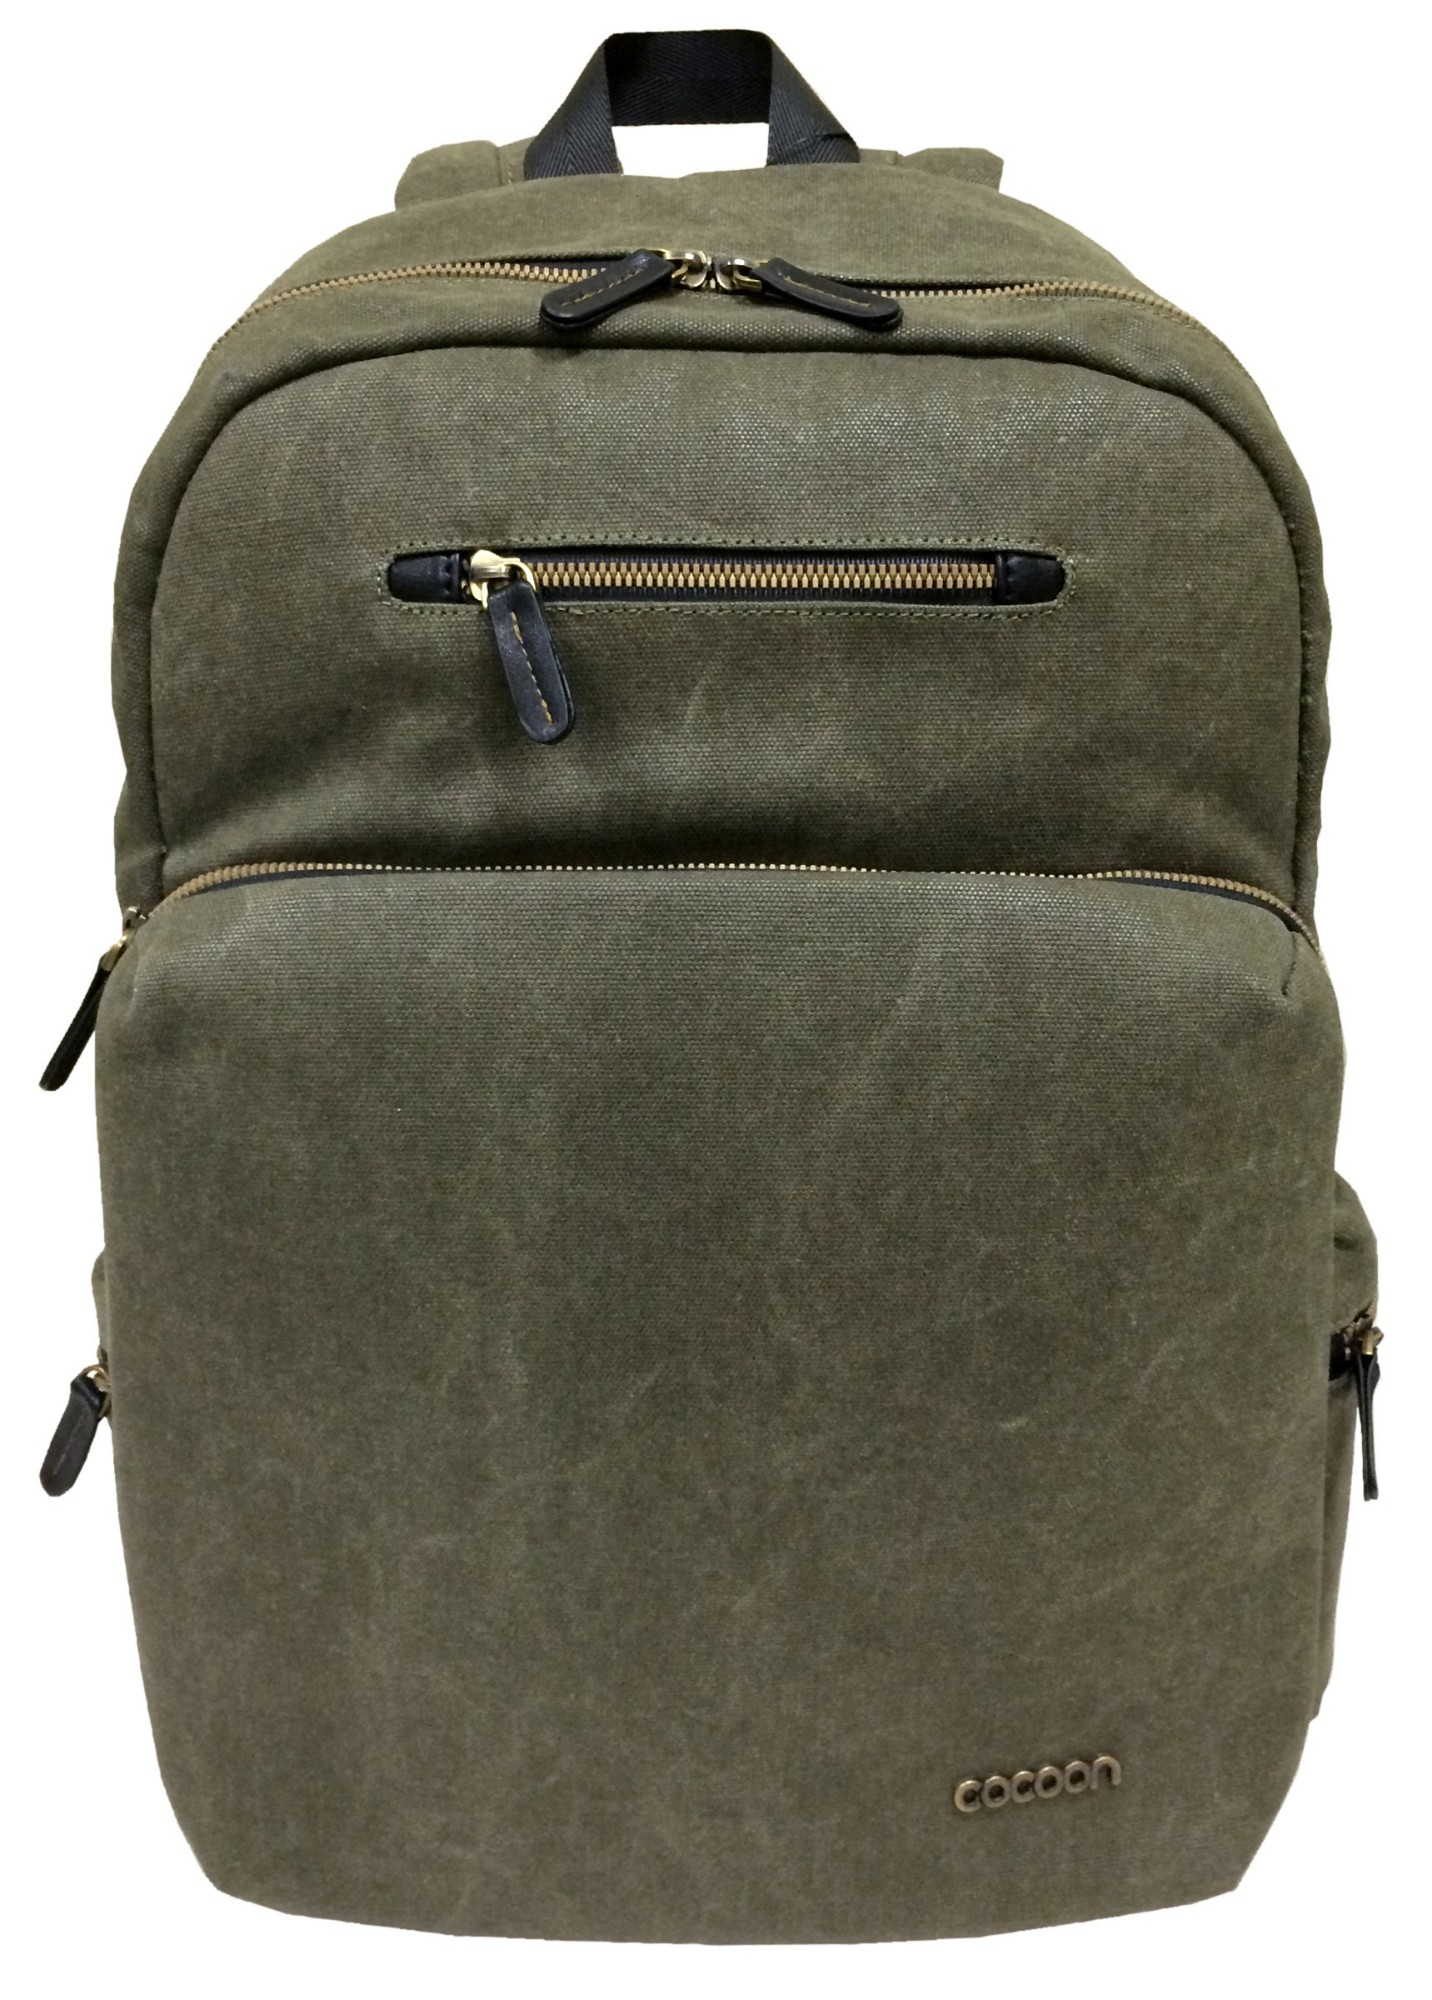 Cocoon Urban Adventure 16 Backpack -Agr